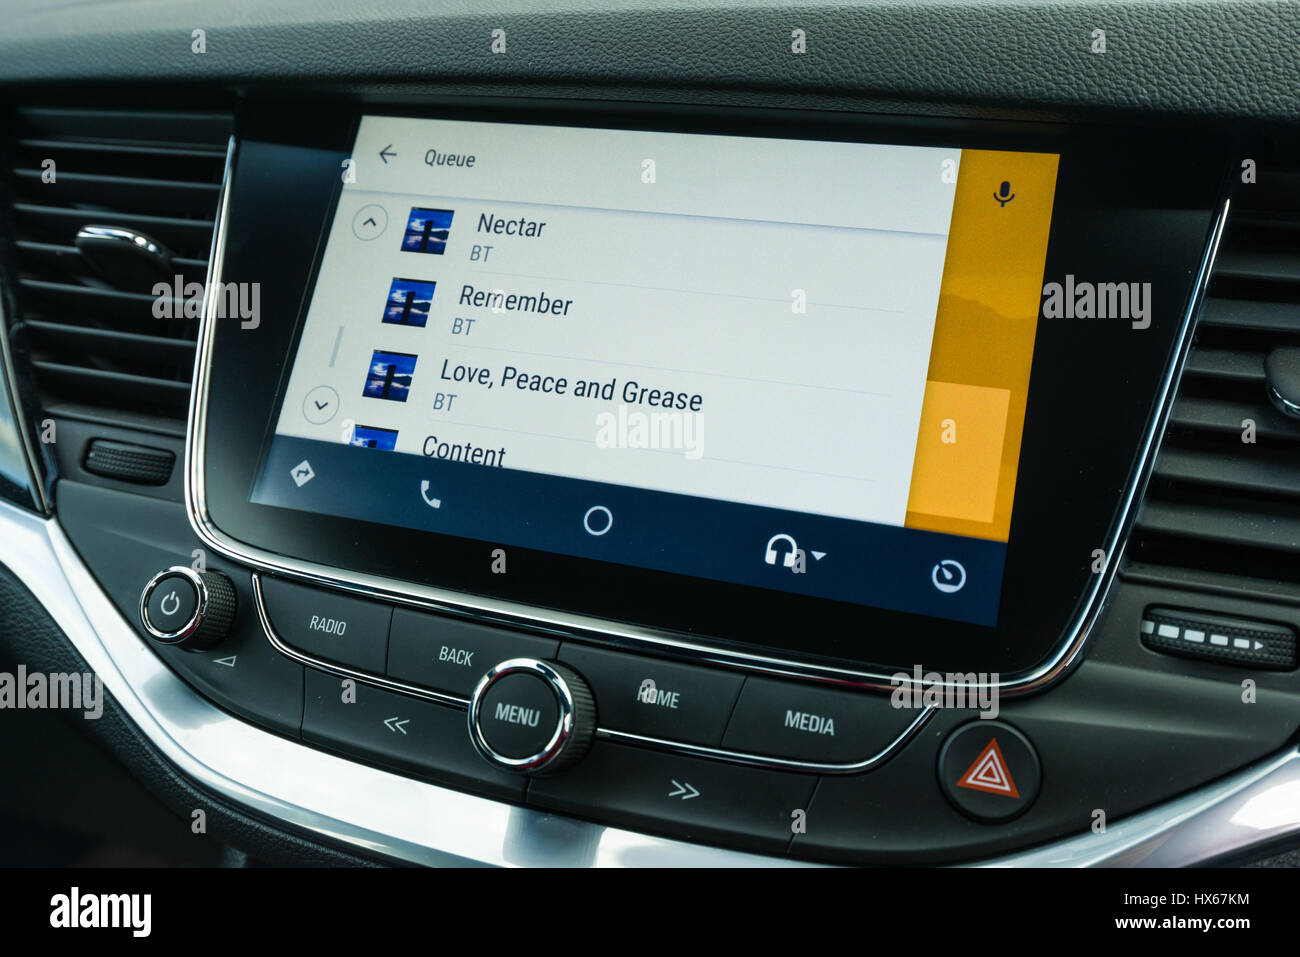 Android Auto Car Vehicle Navigation Interface Showing Google